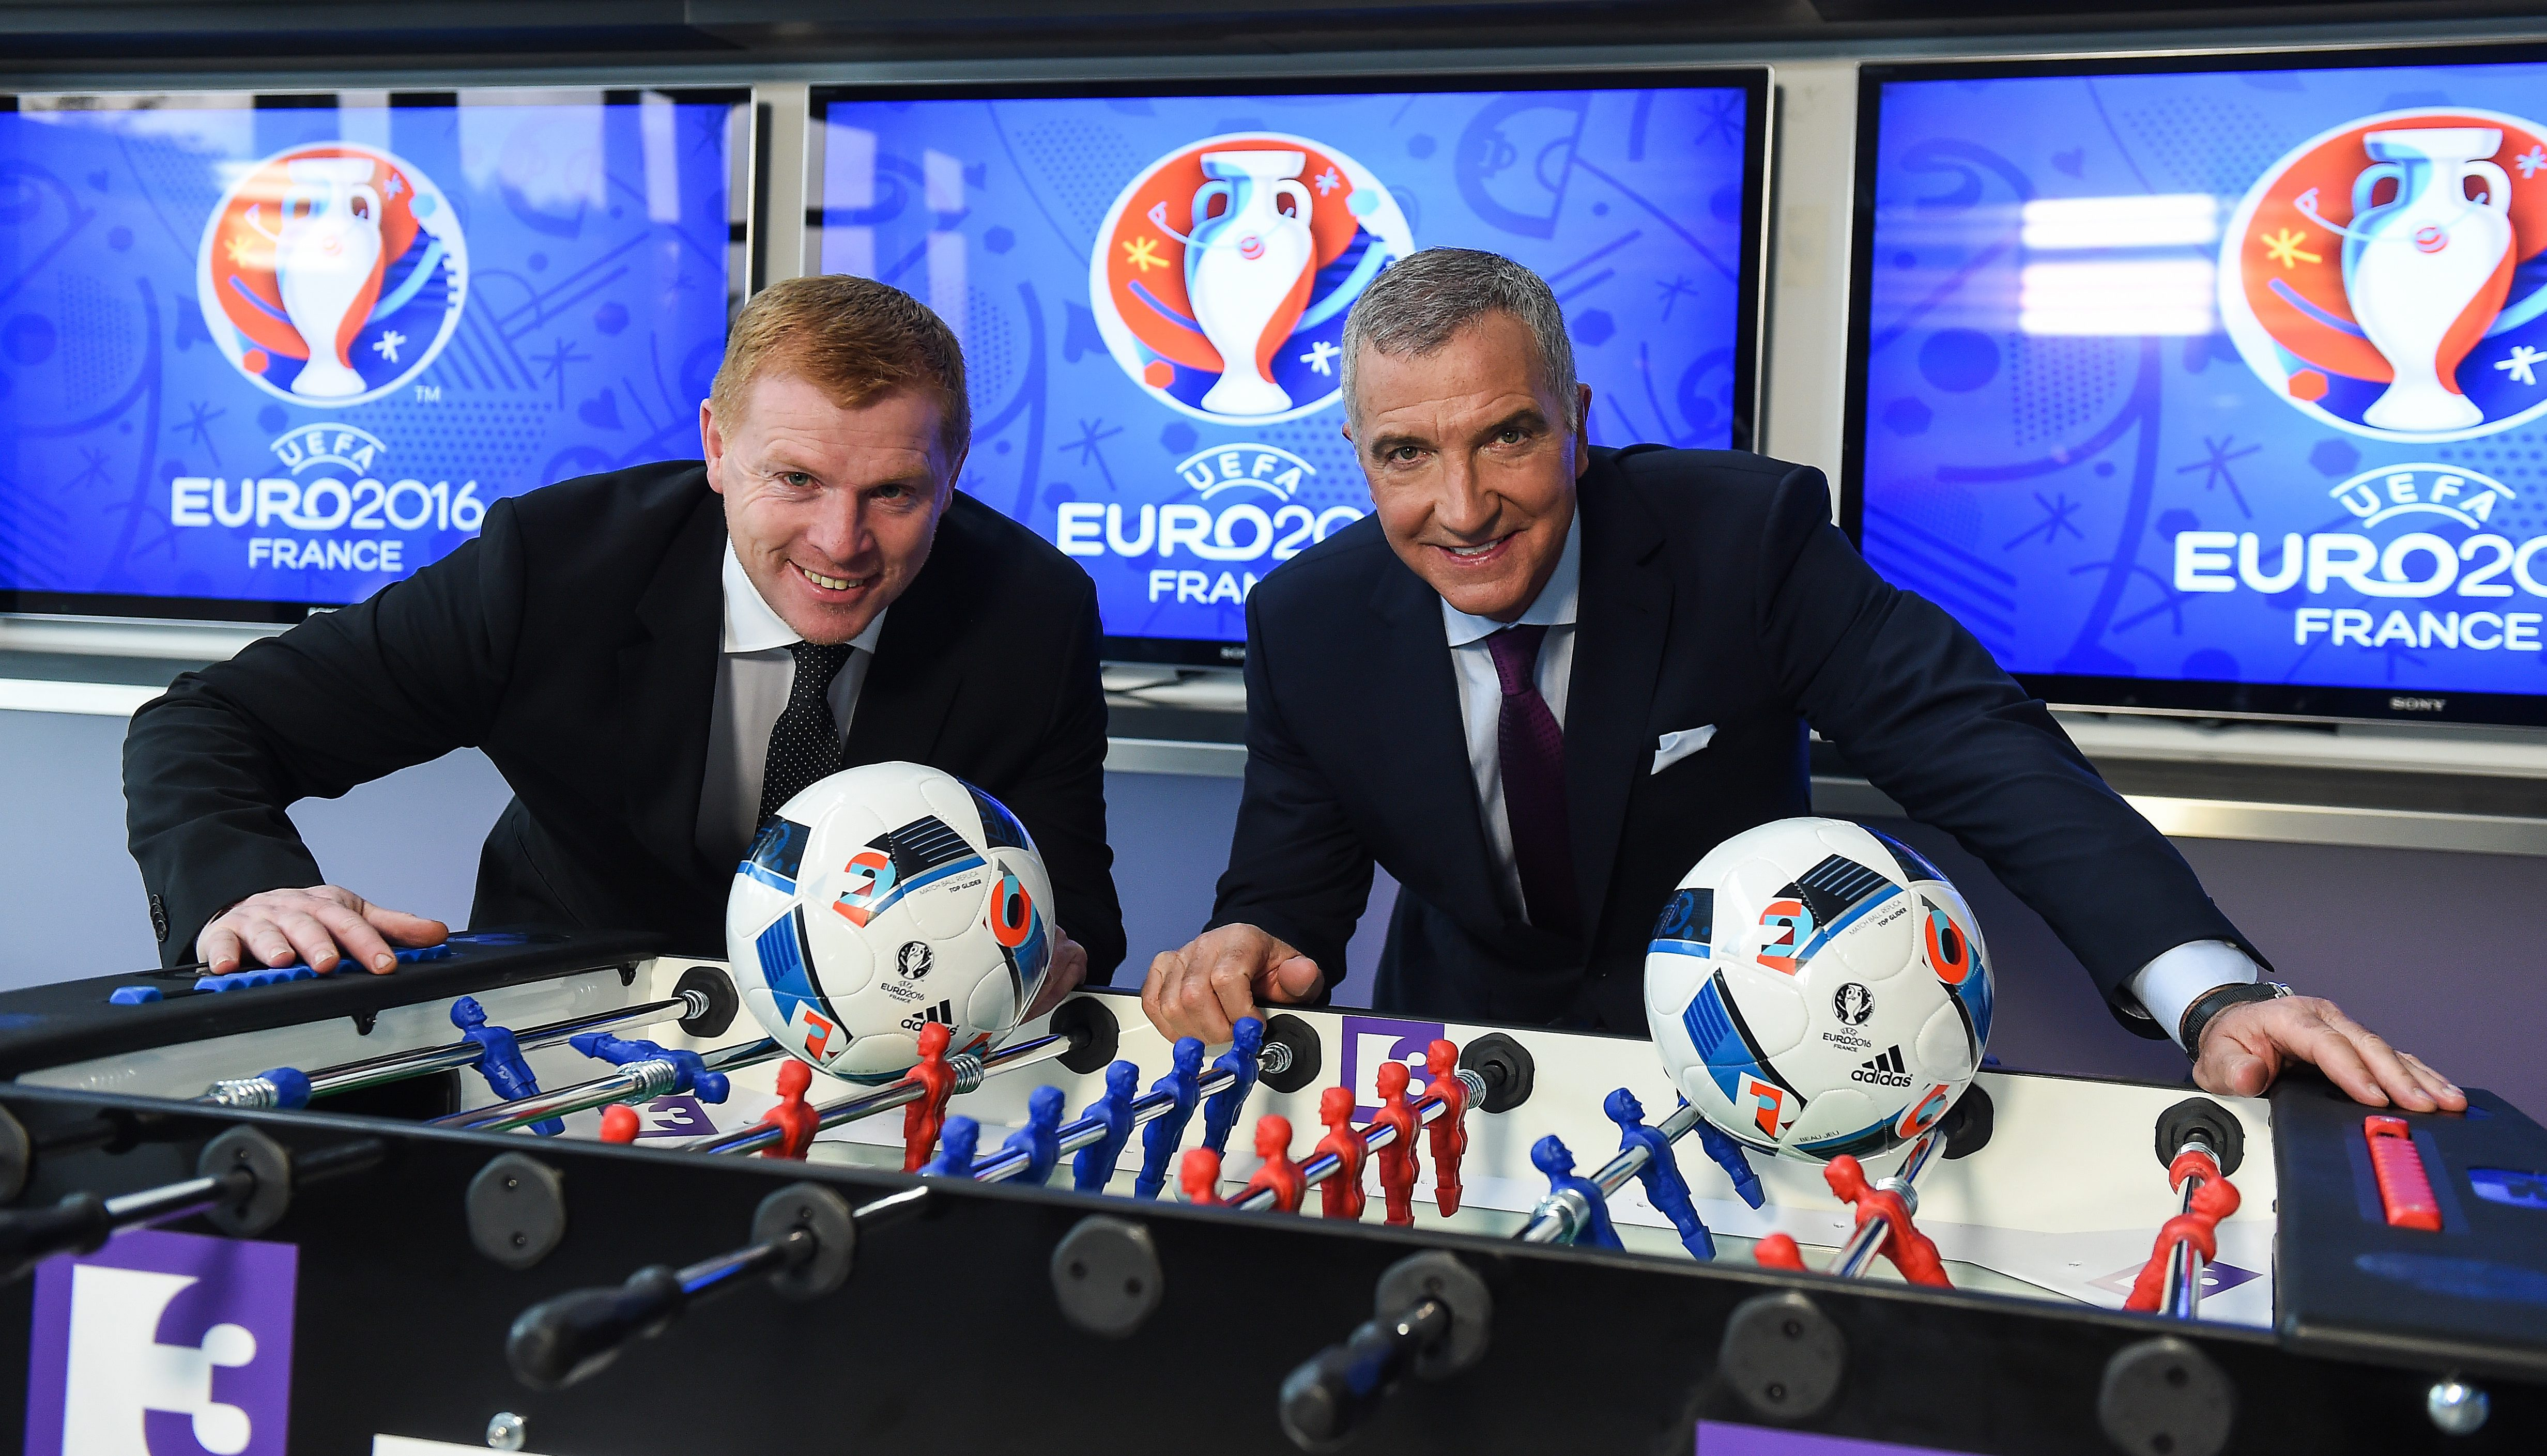 Neil Lennon and Graeme Souness have become good pals since working together as pundits on Irish television